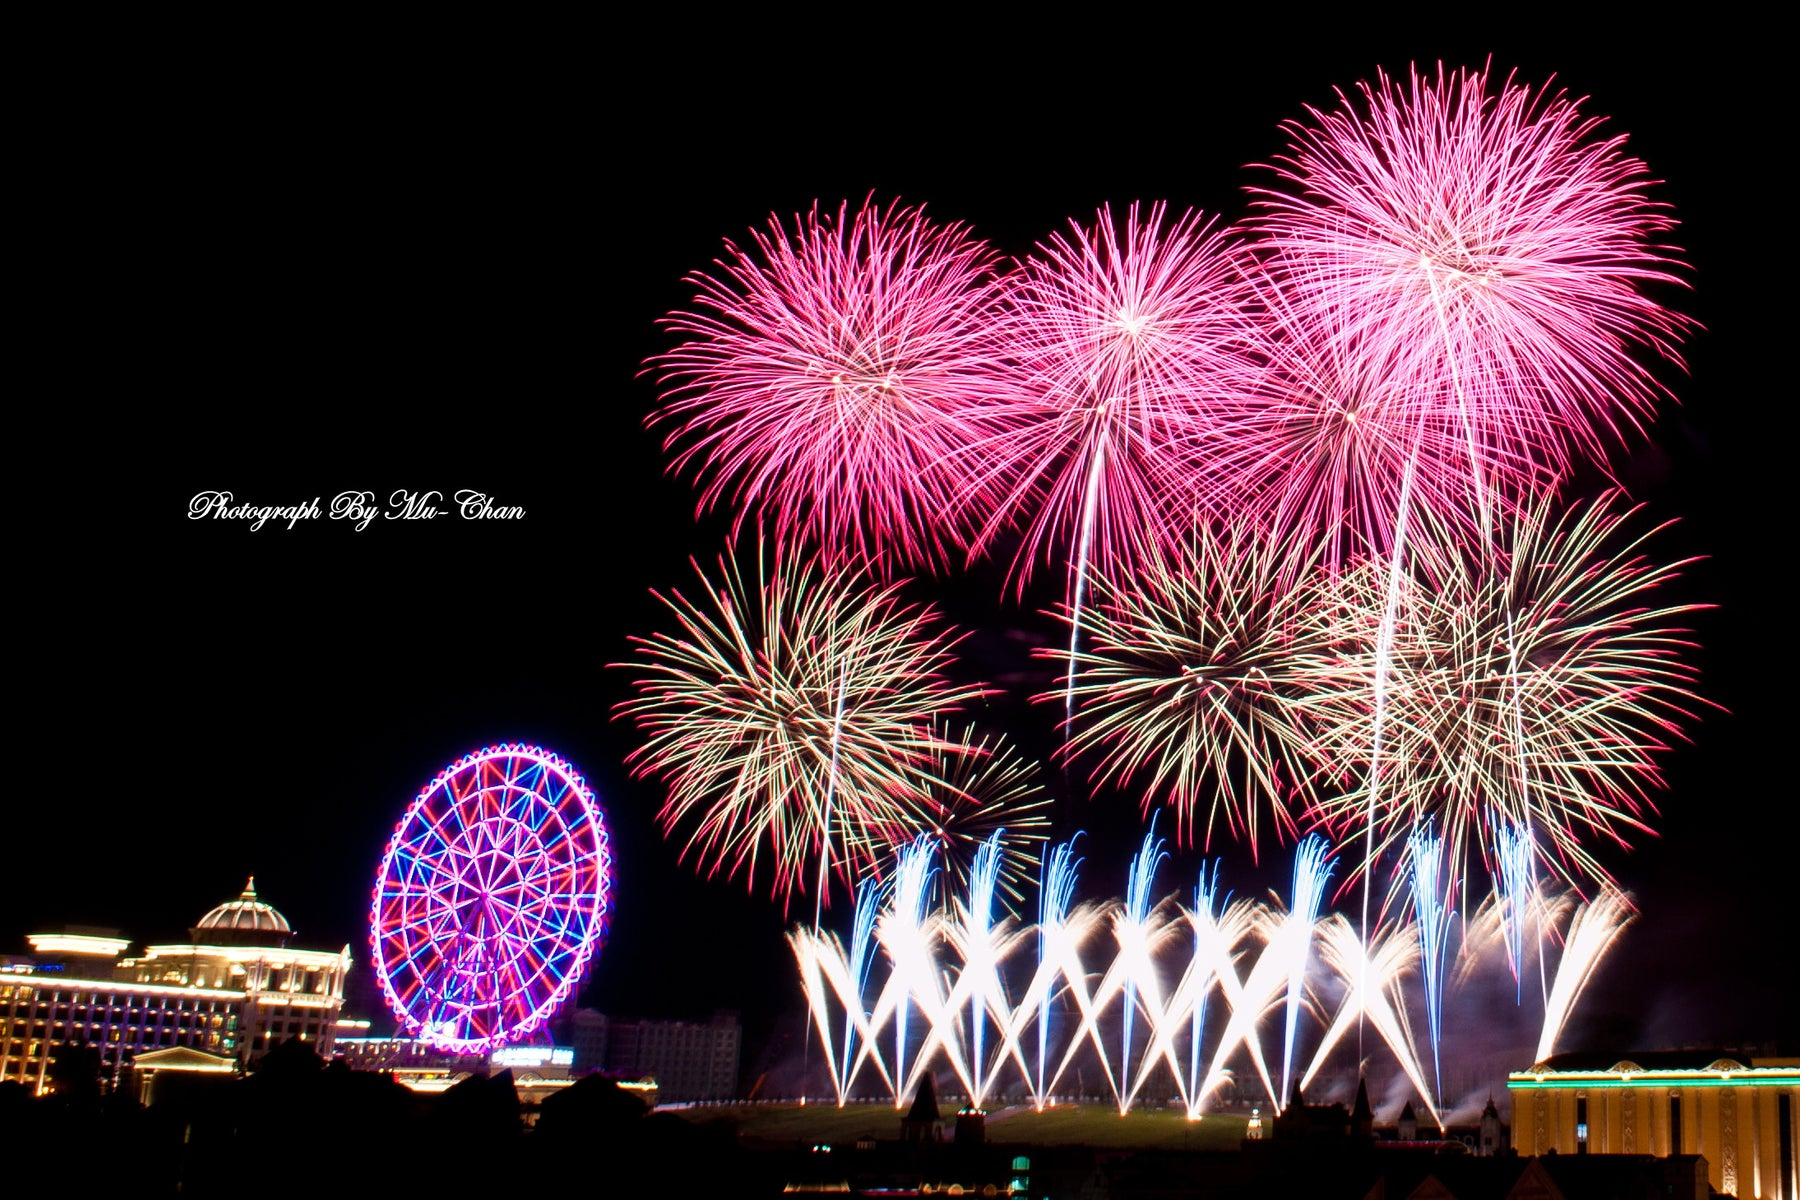 More flights to Da Nang during International Fireworks Festival